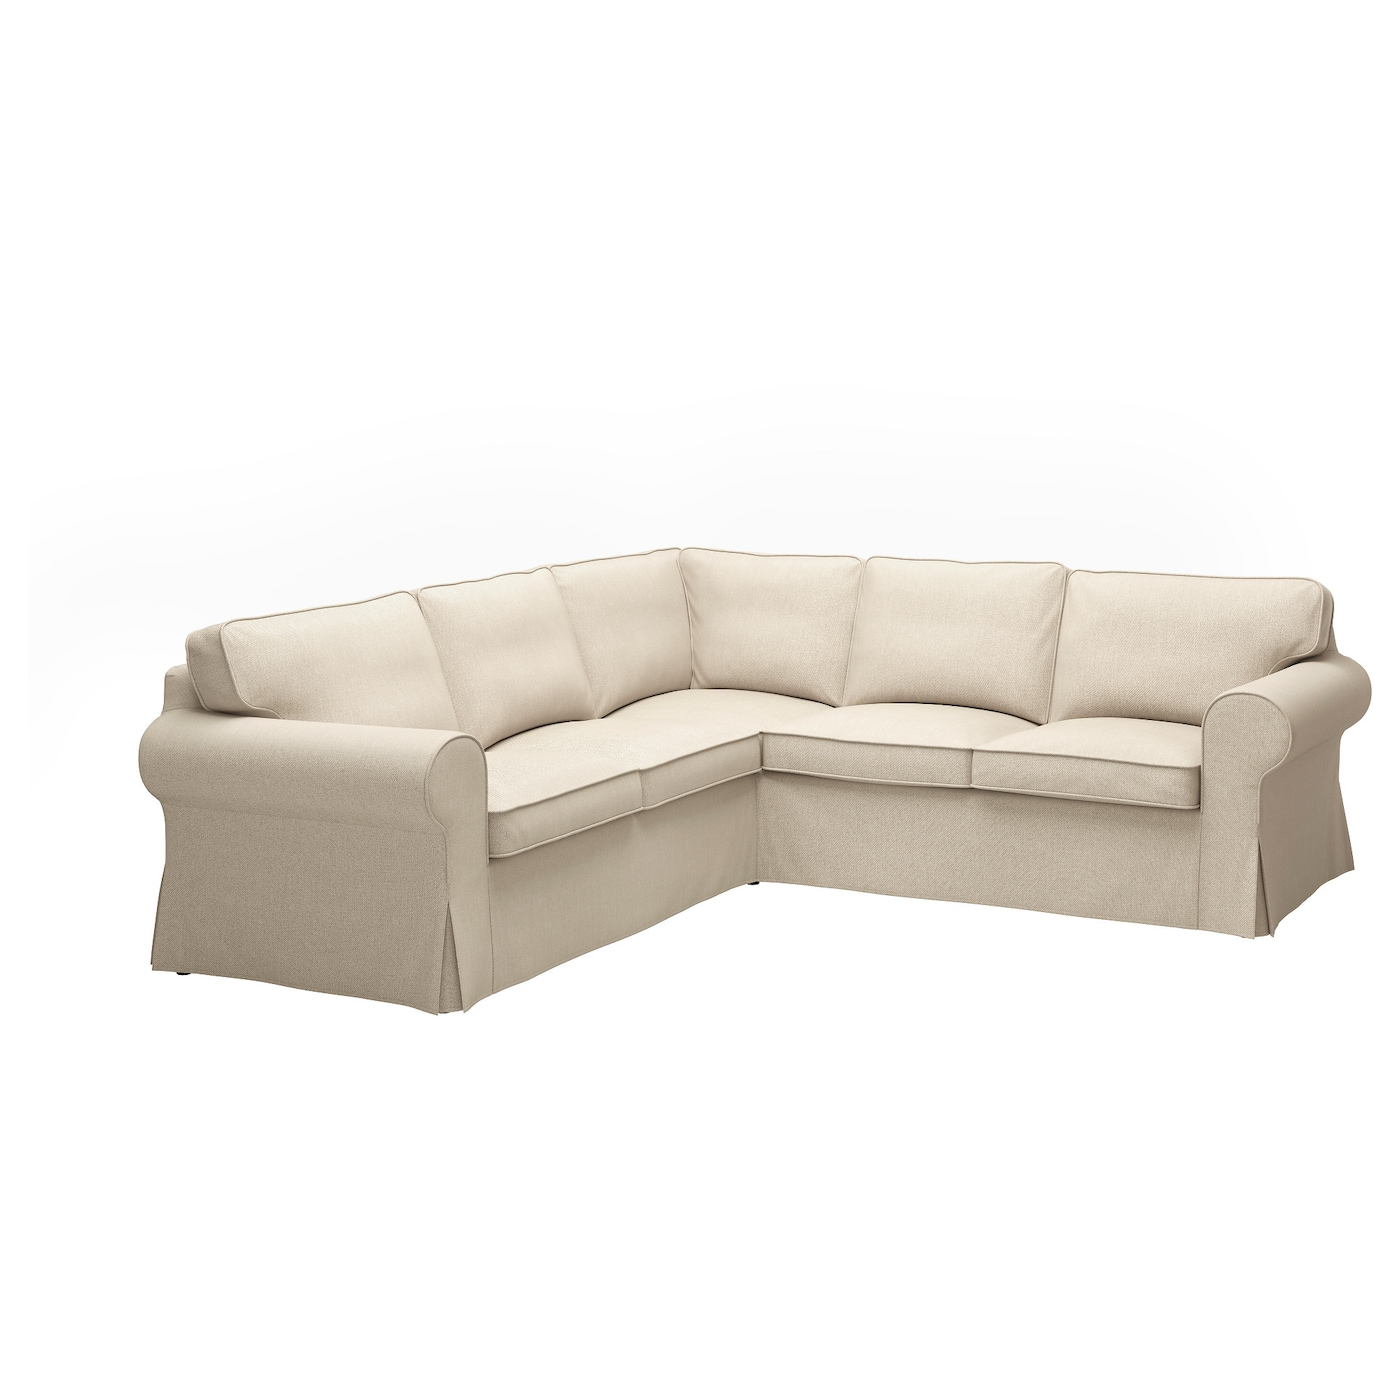 IKEA EKTORP corner sofa, 4-seat 10 year guarantee. Read about the terms in the guarantee brochure.